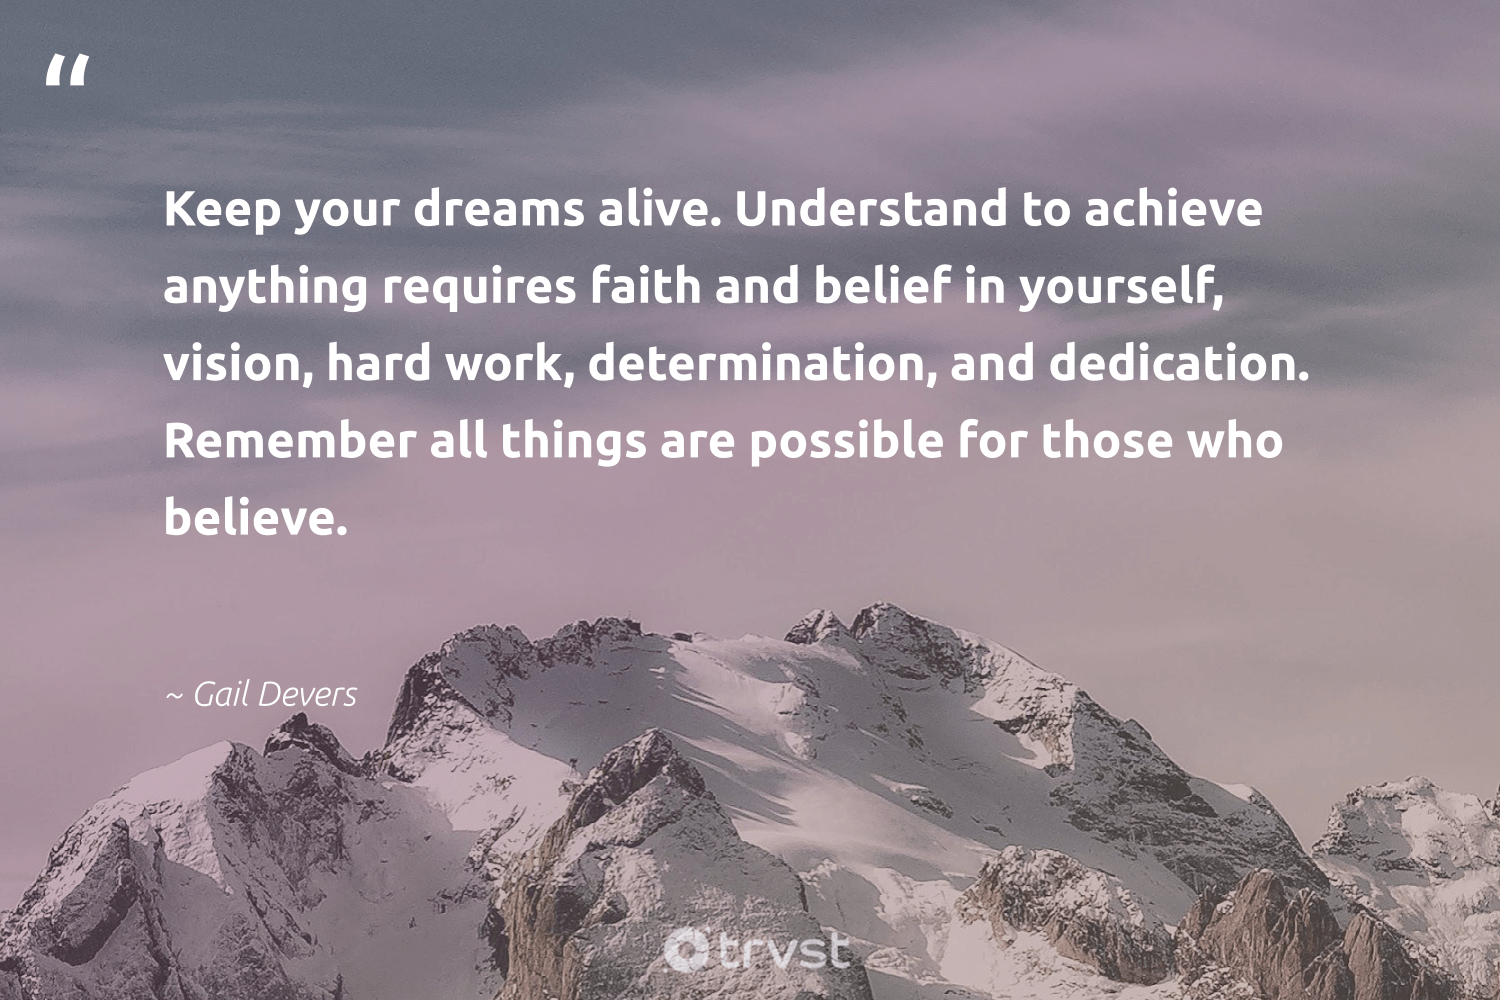 """""""Keep your dreams alive. Understand to achieve anything requires faith and belief in yourself, vision, hard work, determination, and dedication. Remember all things are possible for those who believe.""""  - Gail Devers #trvst #quotes #nevergiveup #socialimpact #futureofwork #collectiveaction #begreat #dogood #softskills #changetheworld #planetearthfirst #takeaction"""